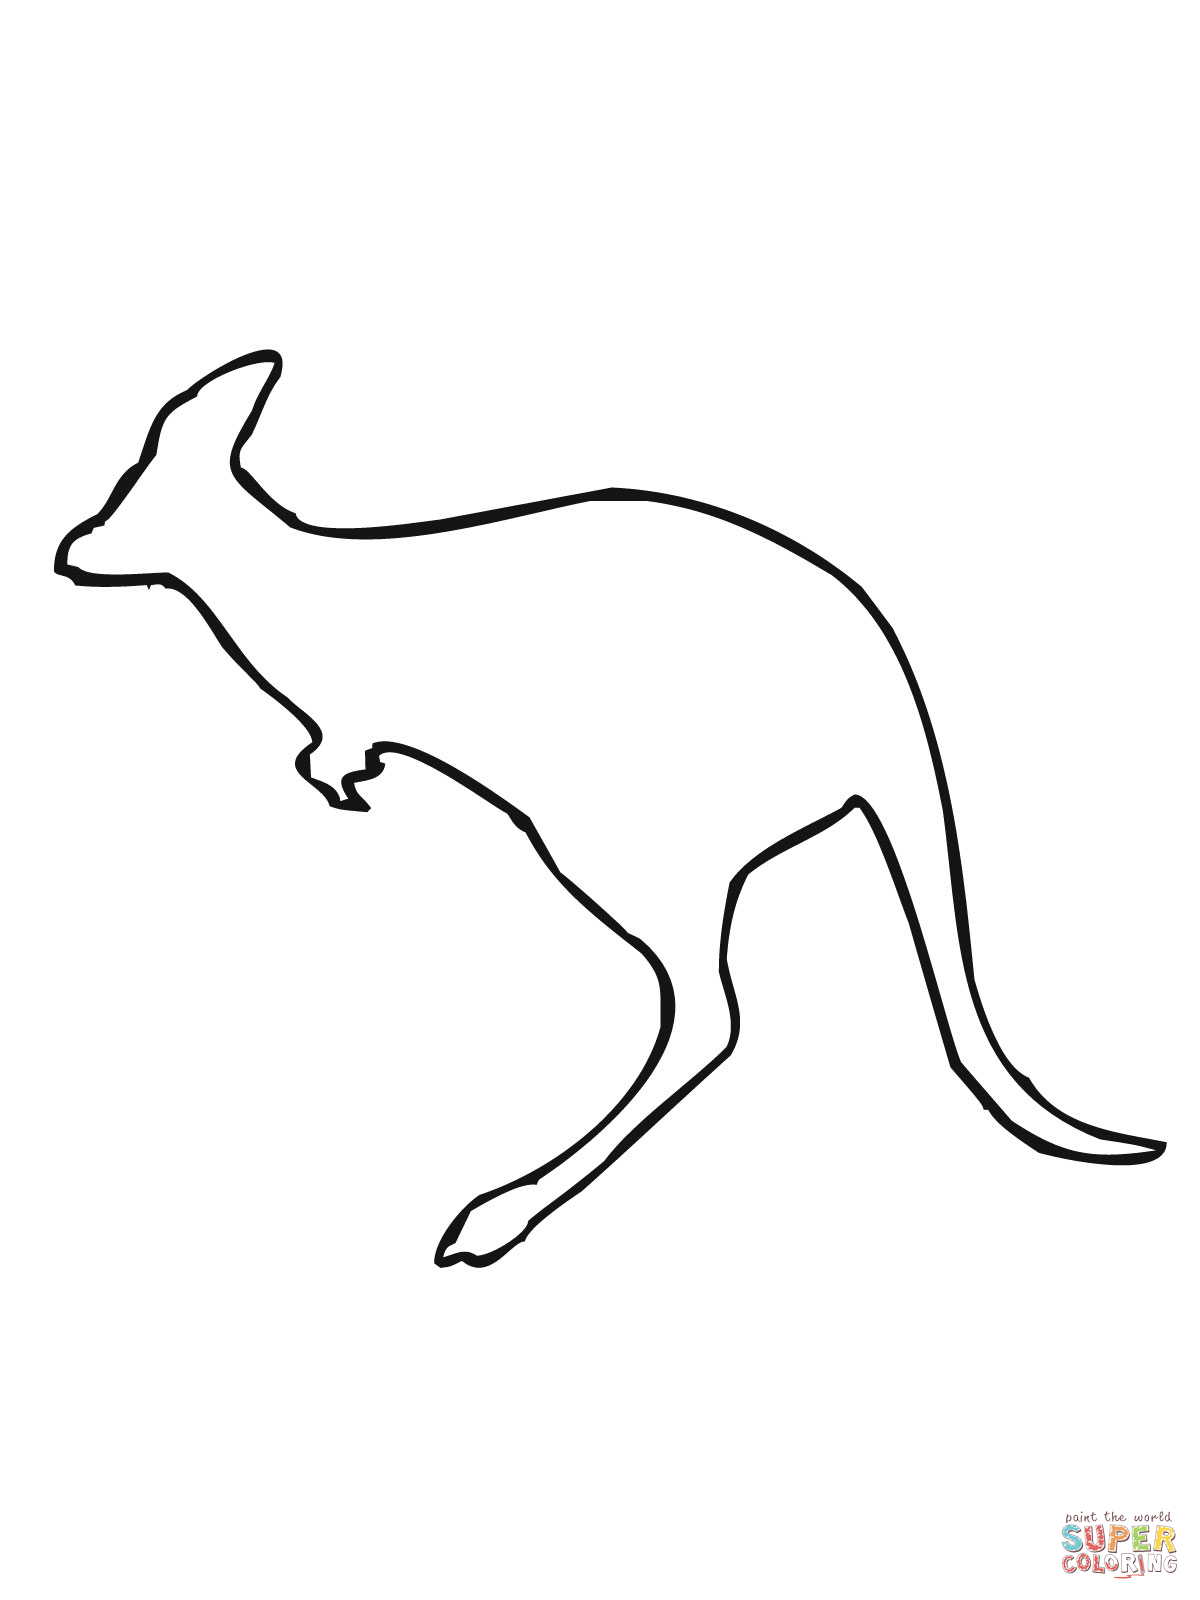 outline picture of kangaroo best kangaroo outline pictures illustrations royalty free outline picture of kangaroo